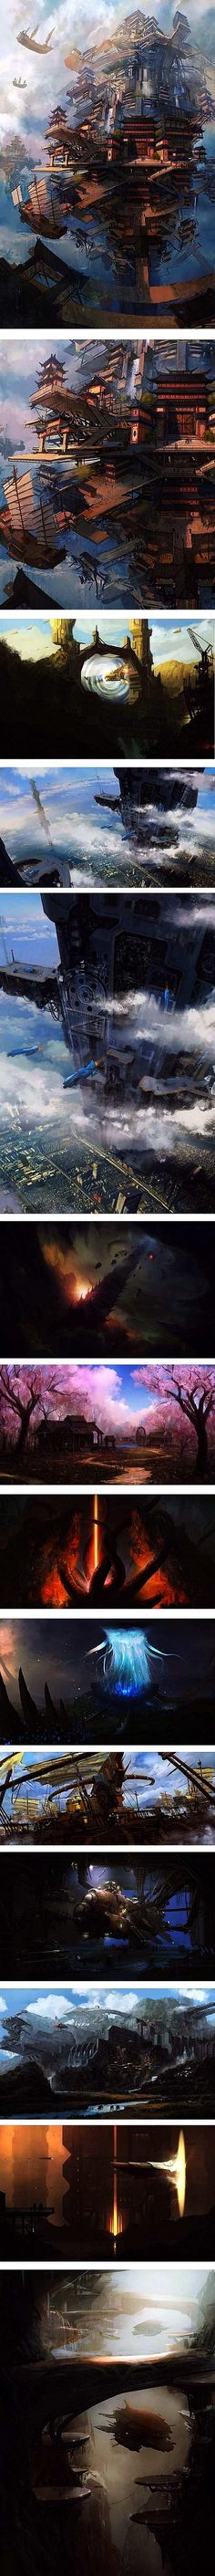 BY: Wan Bao........................ Click on image to enlarge....